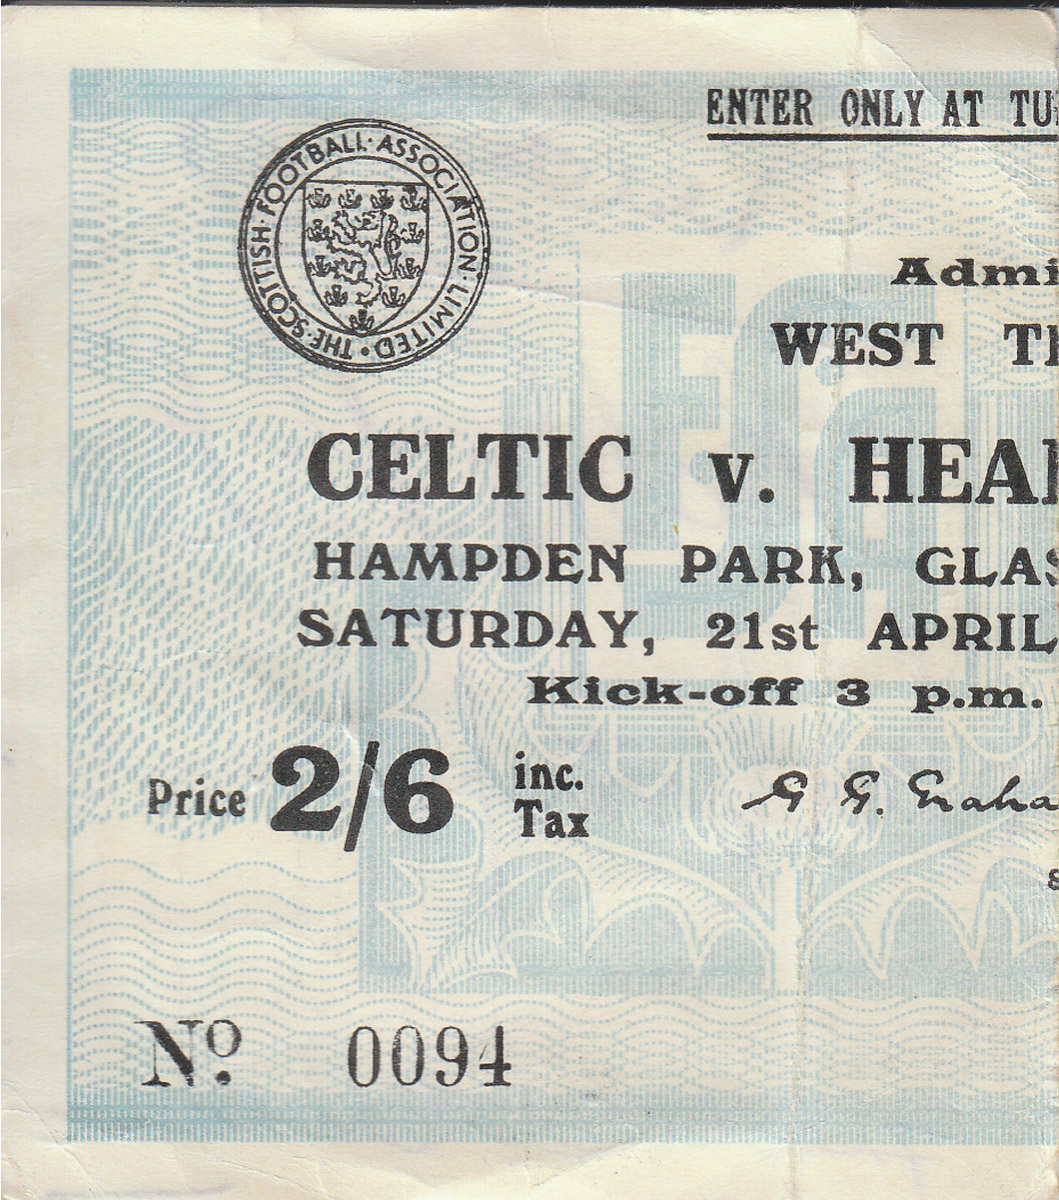 Match Ticket from 1956 Scottish Cup Final priced 2/6 with autographs